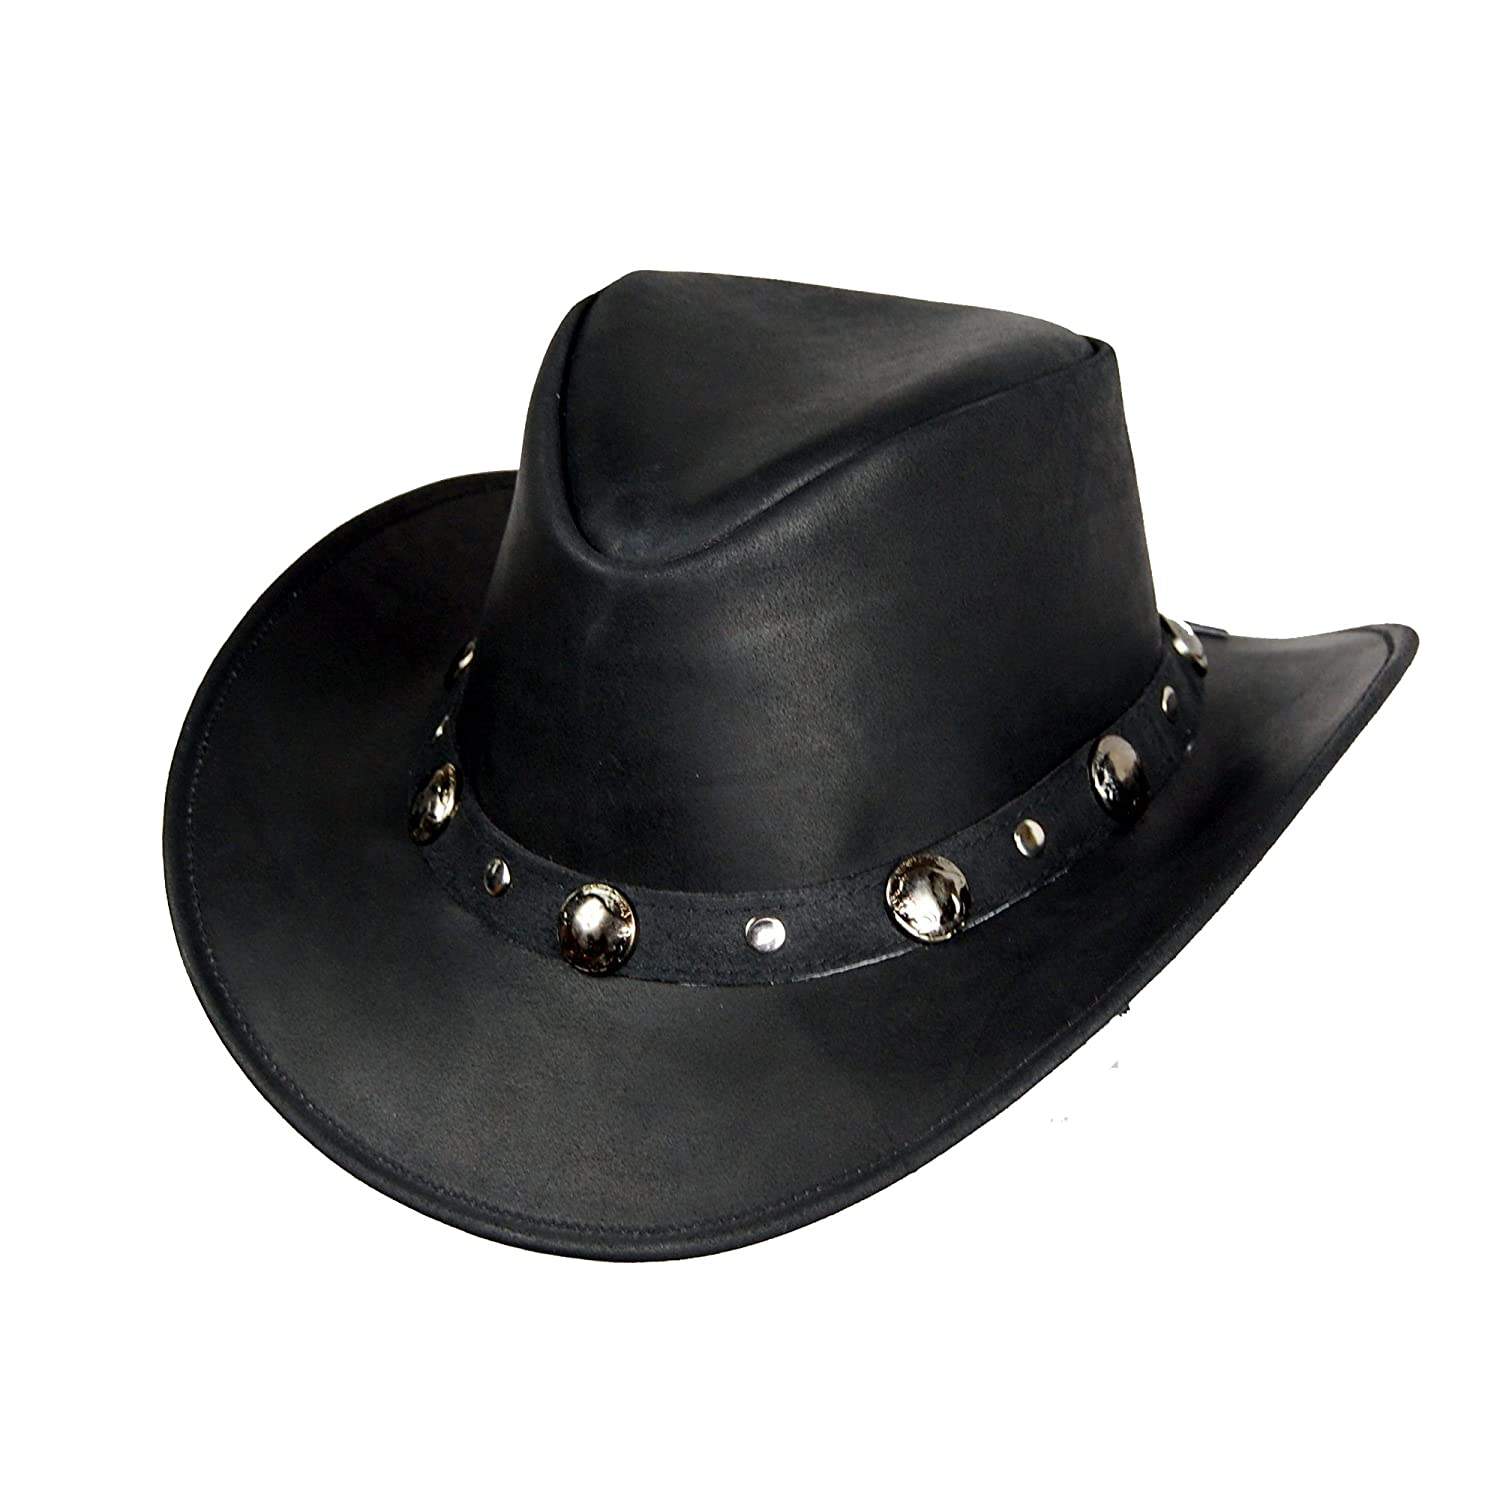 Lesa Collection COWBOY WESTERN STYLE LEATHER HAT BLACK QUALITY LEATHER HAT